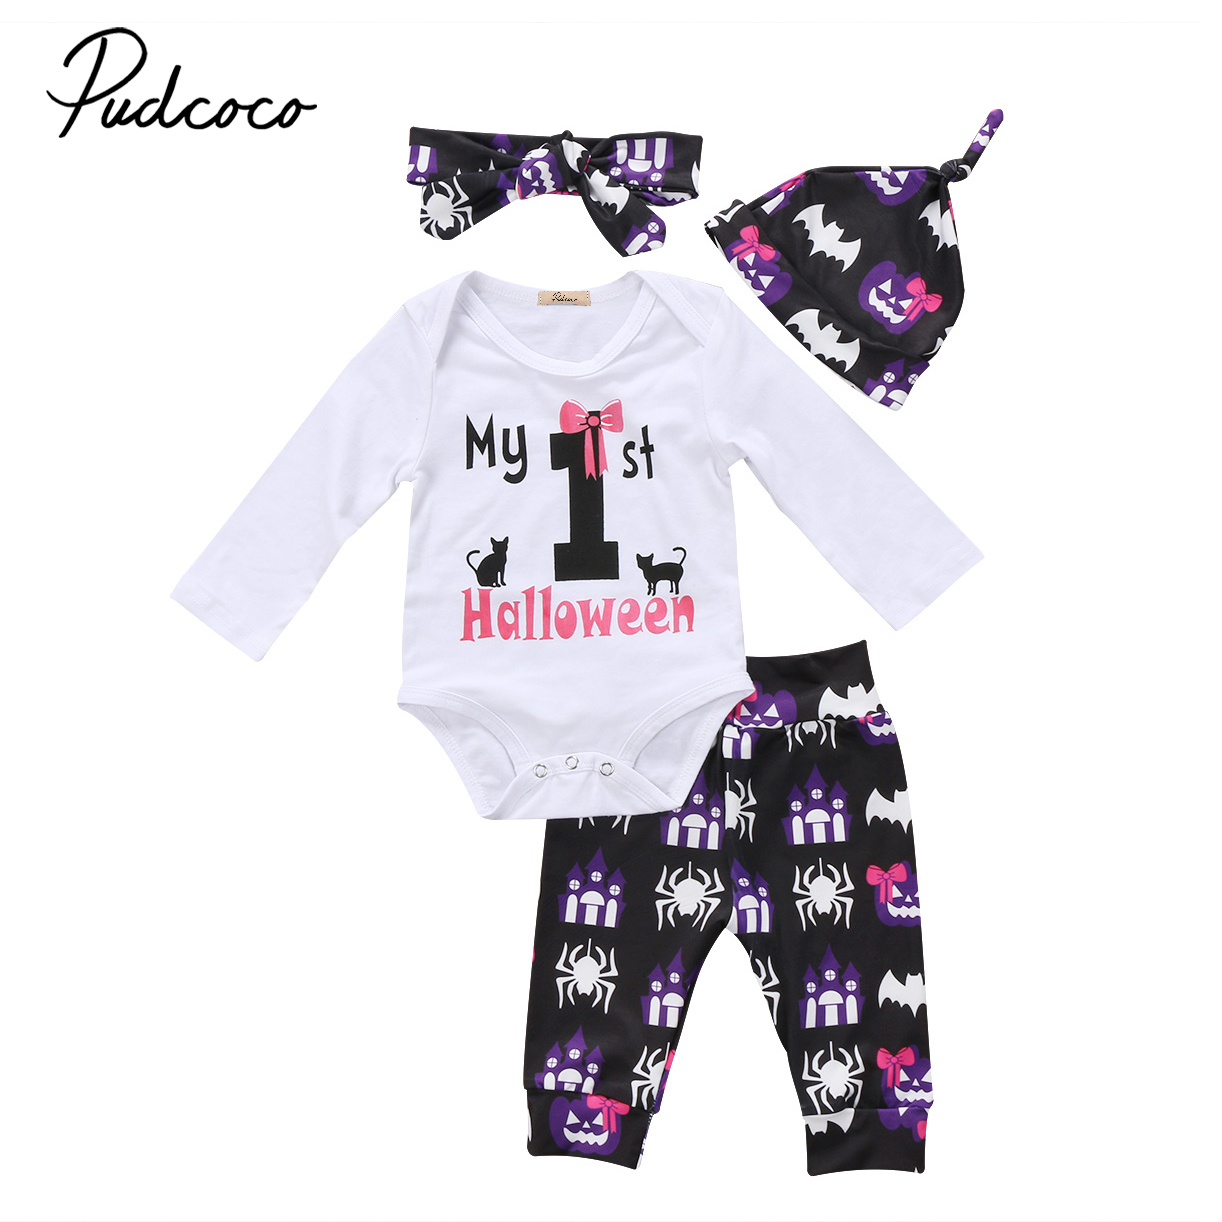 3pcs My First Halloween Newborn Kids Infant Baby Girls Clothes Long Sleeve Romper Jumpsuit Floral Pants Outfit Set цена